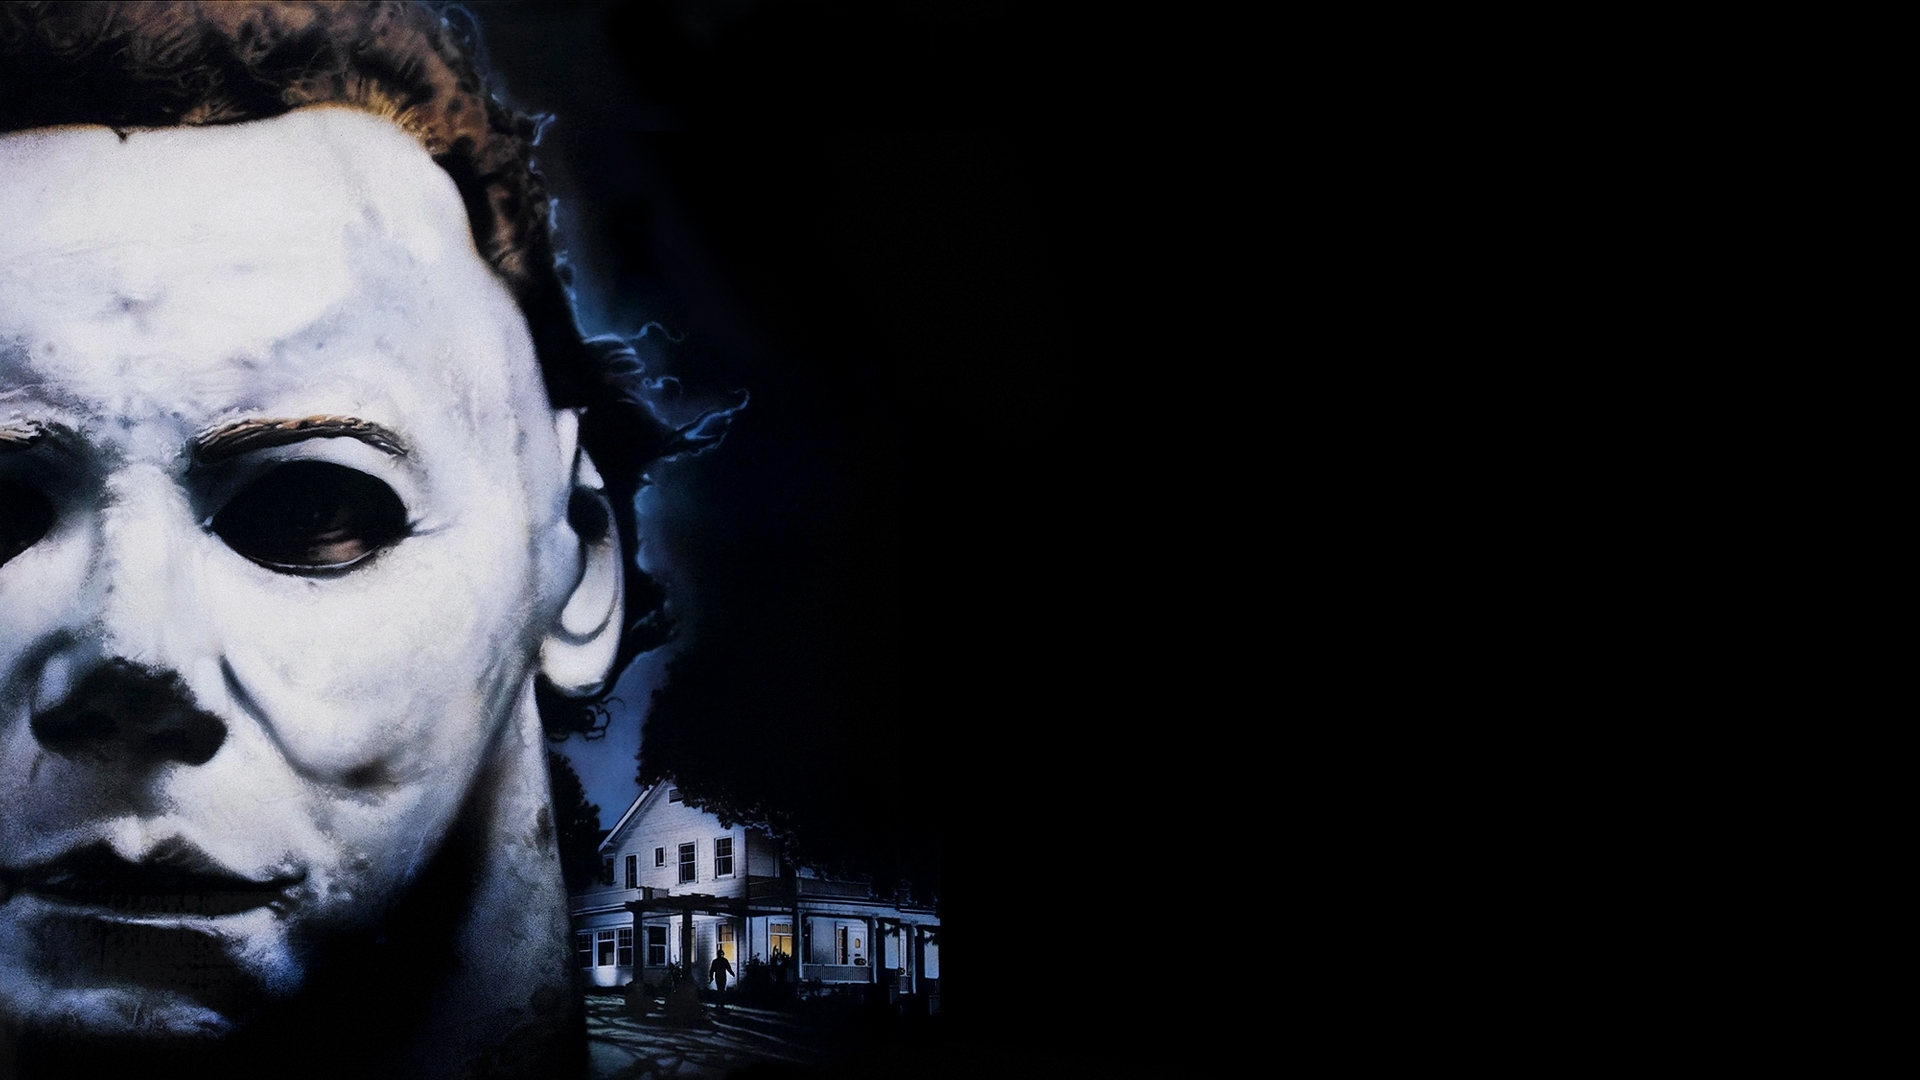 halloween 4: the return of michael myers full hd fond d'écran and